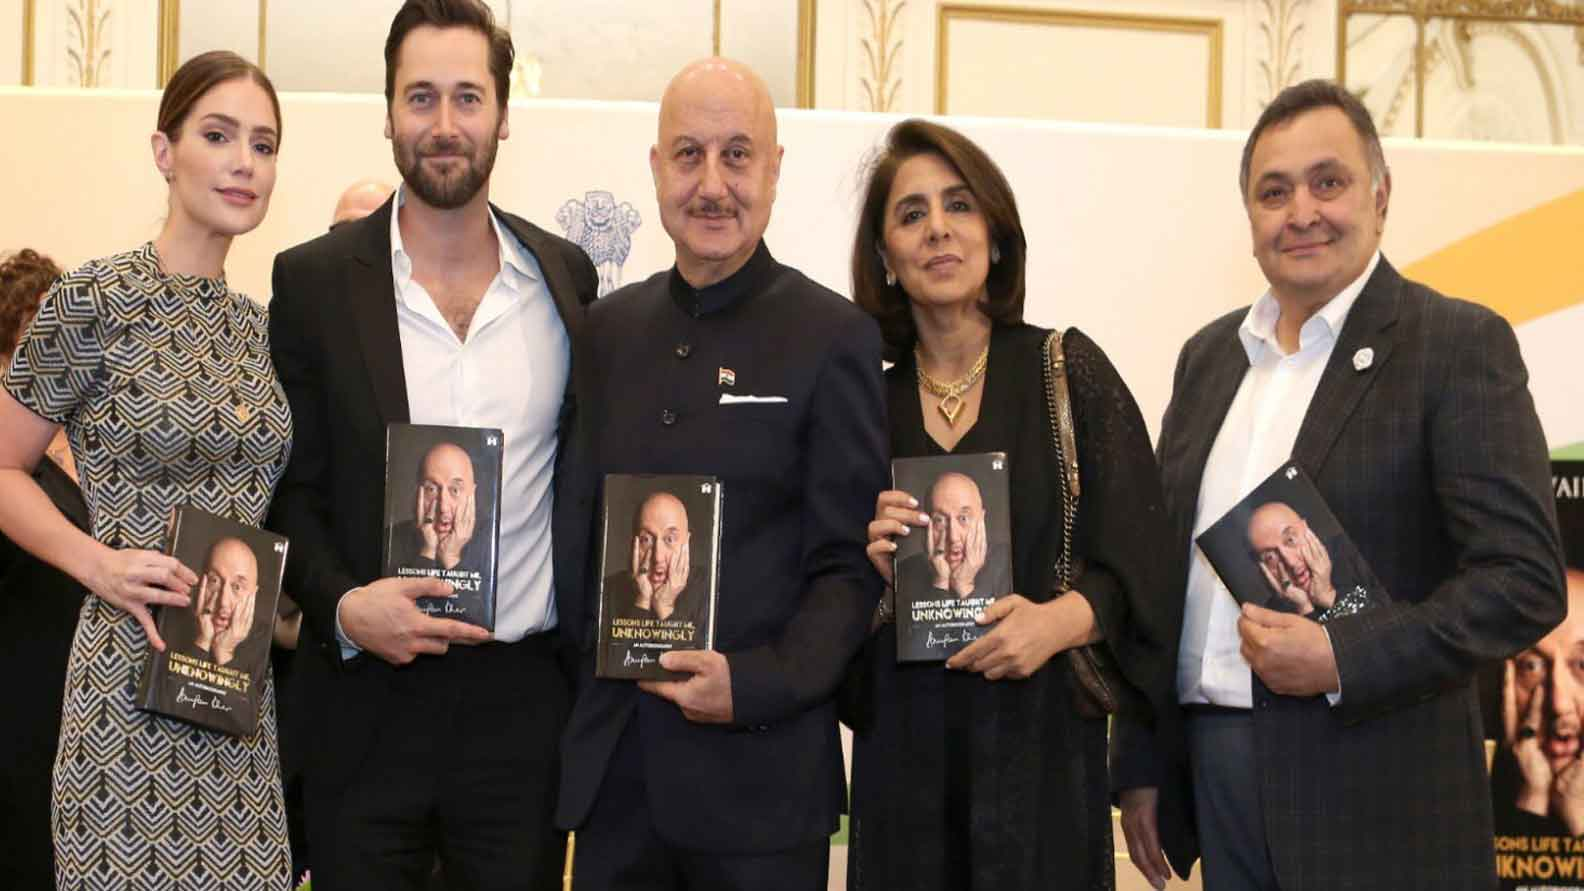 Rishi Kapoor, Neetu Singh launch Anupam Kher's autobiography in New York